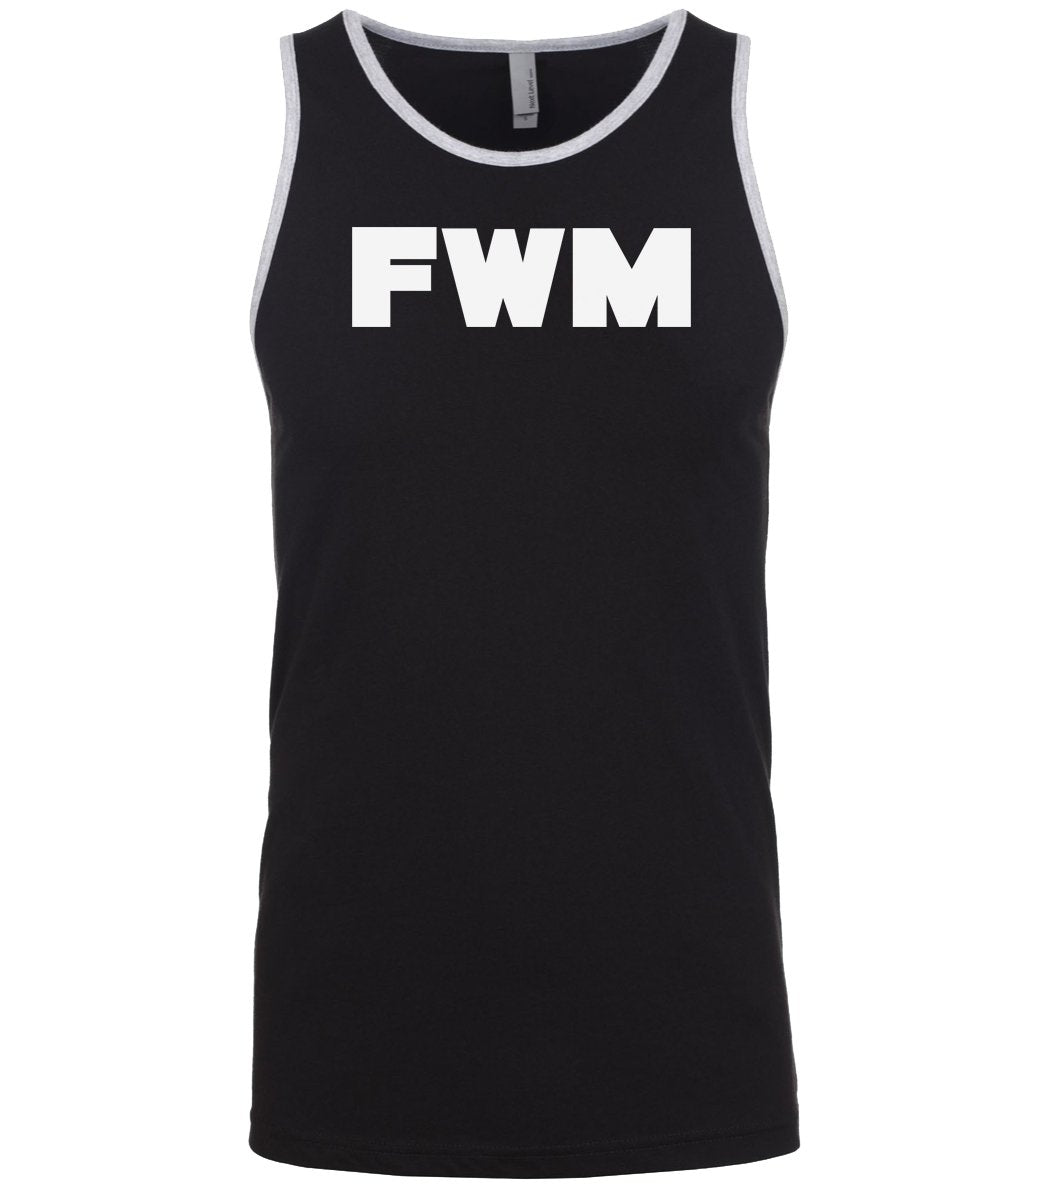 black fwm mens tank top